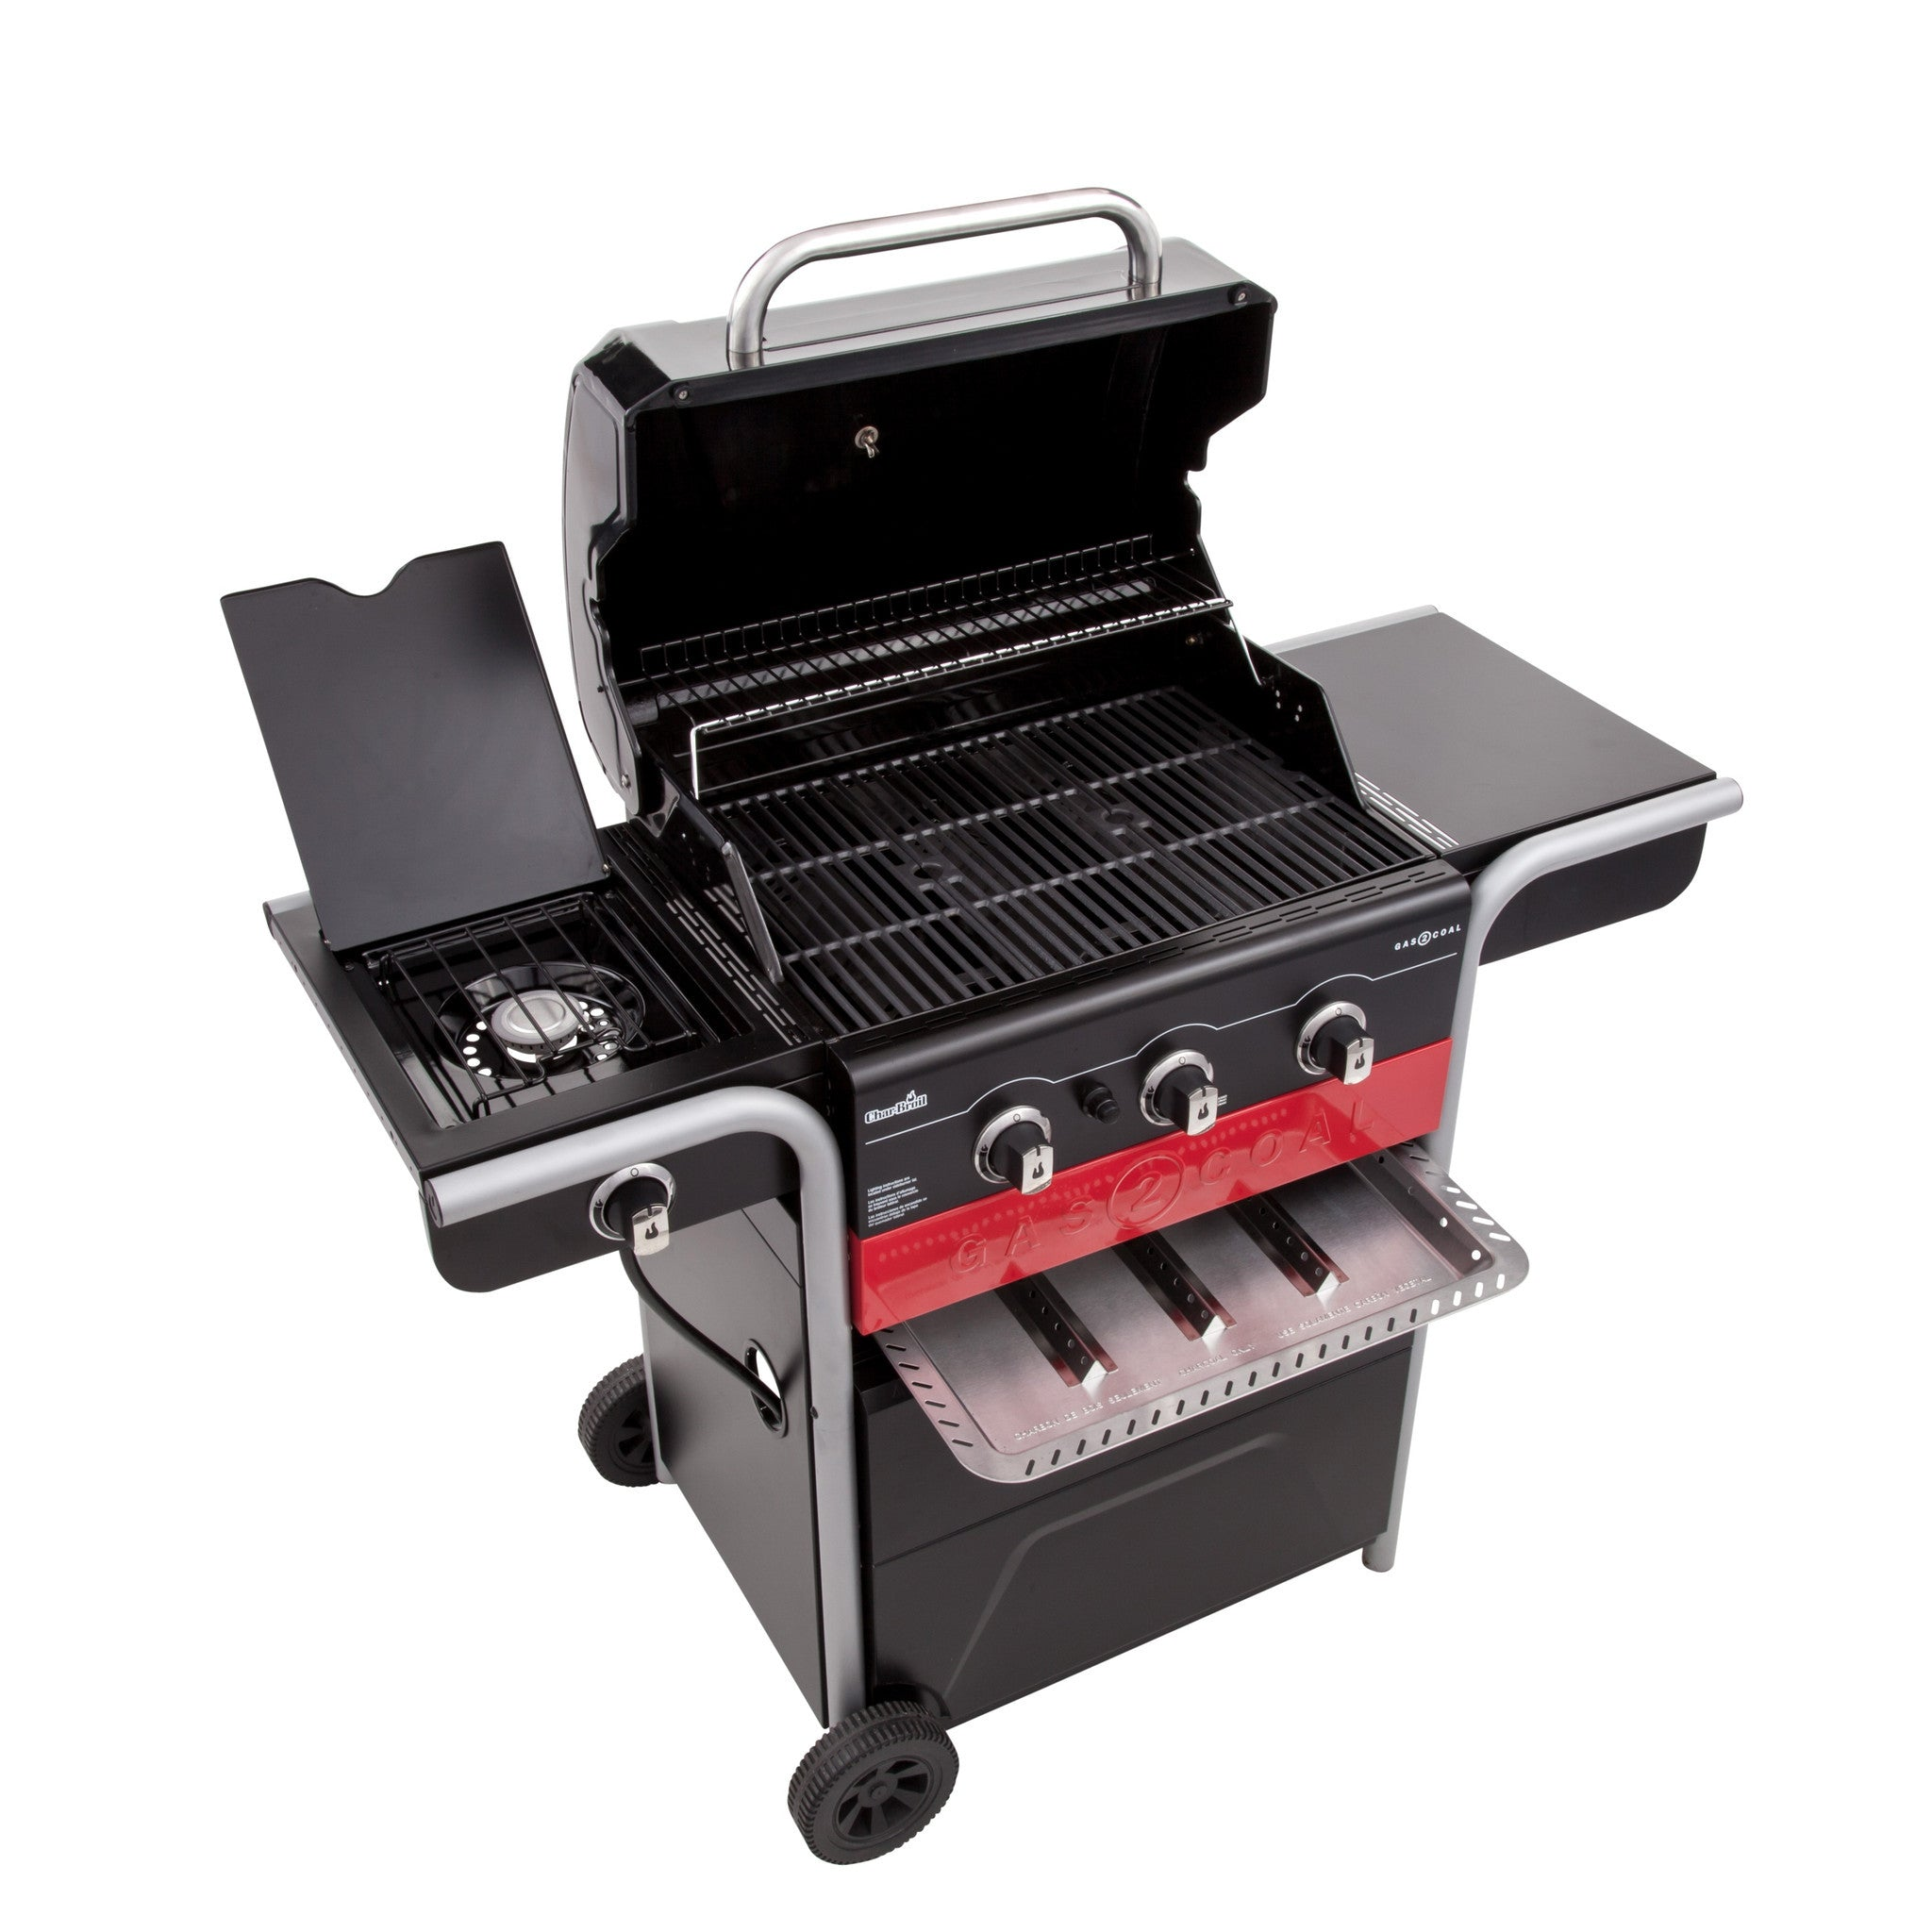 char-broil gas2coal hybrid grill – outdoor living canada